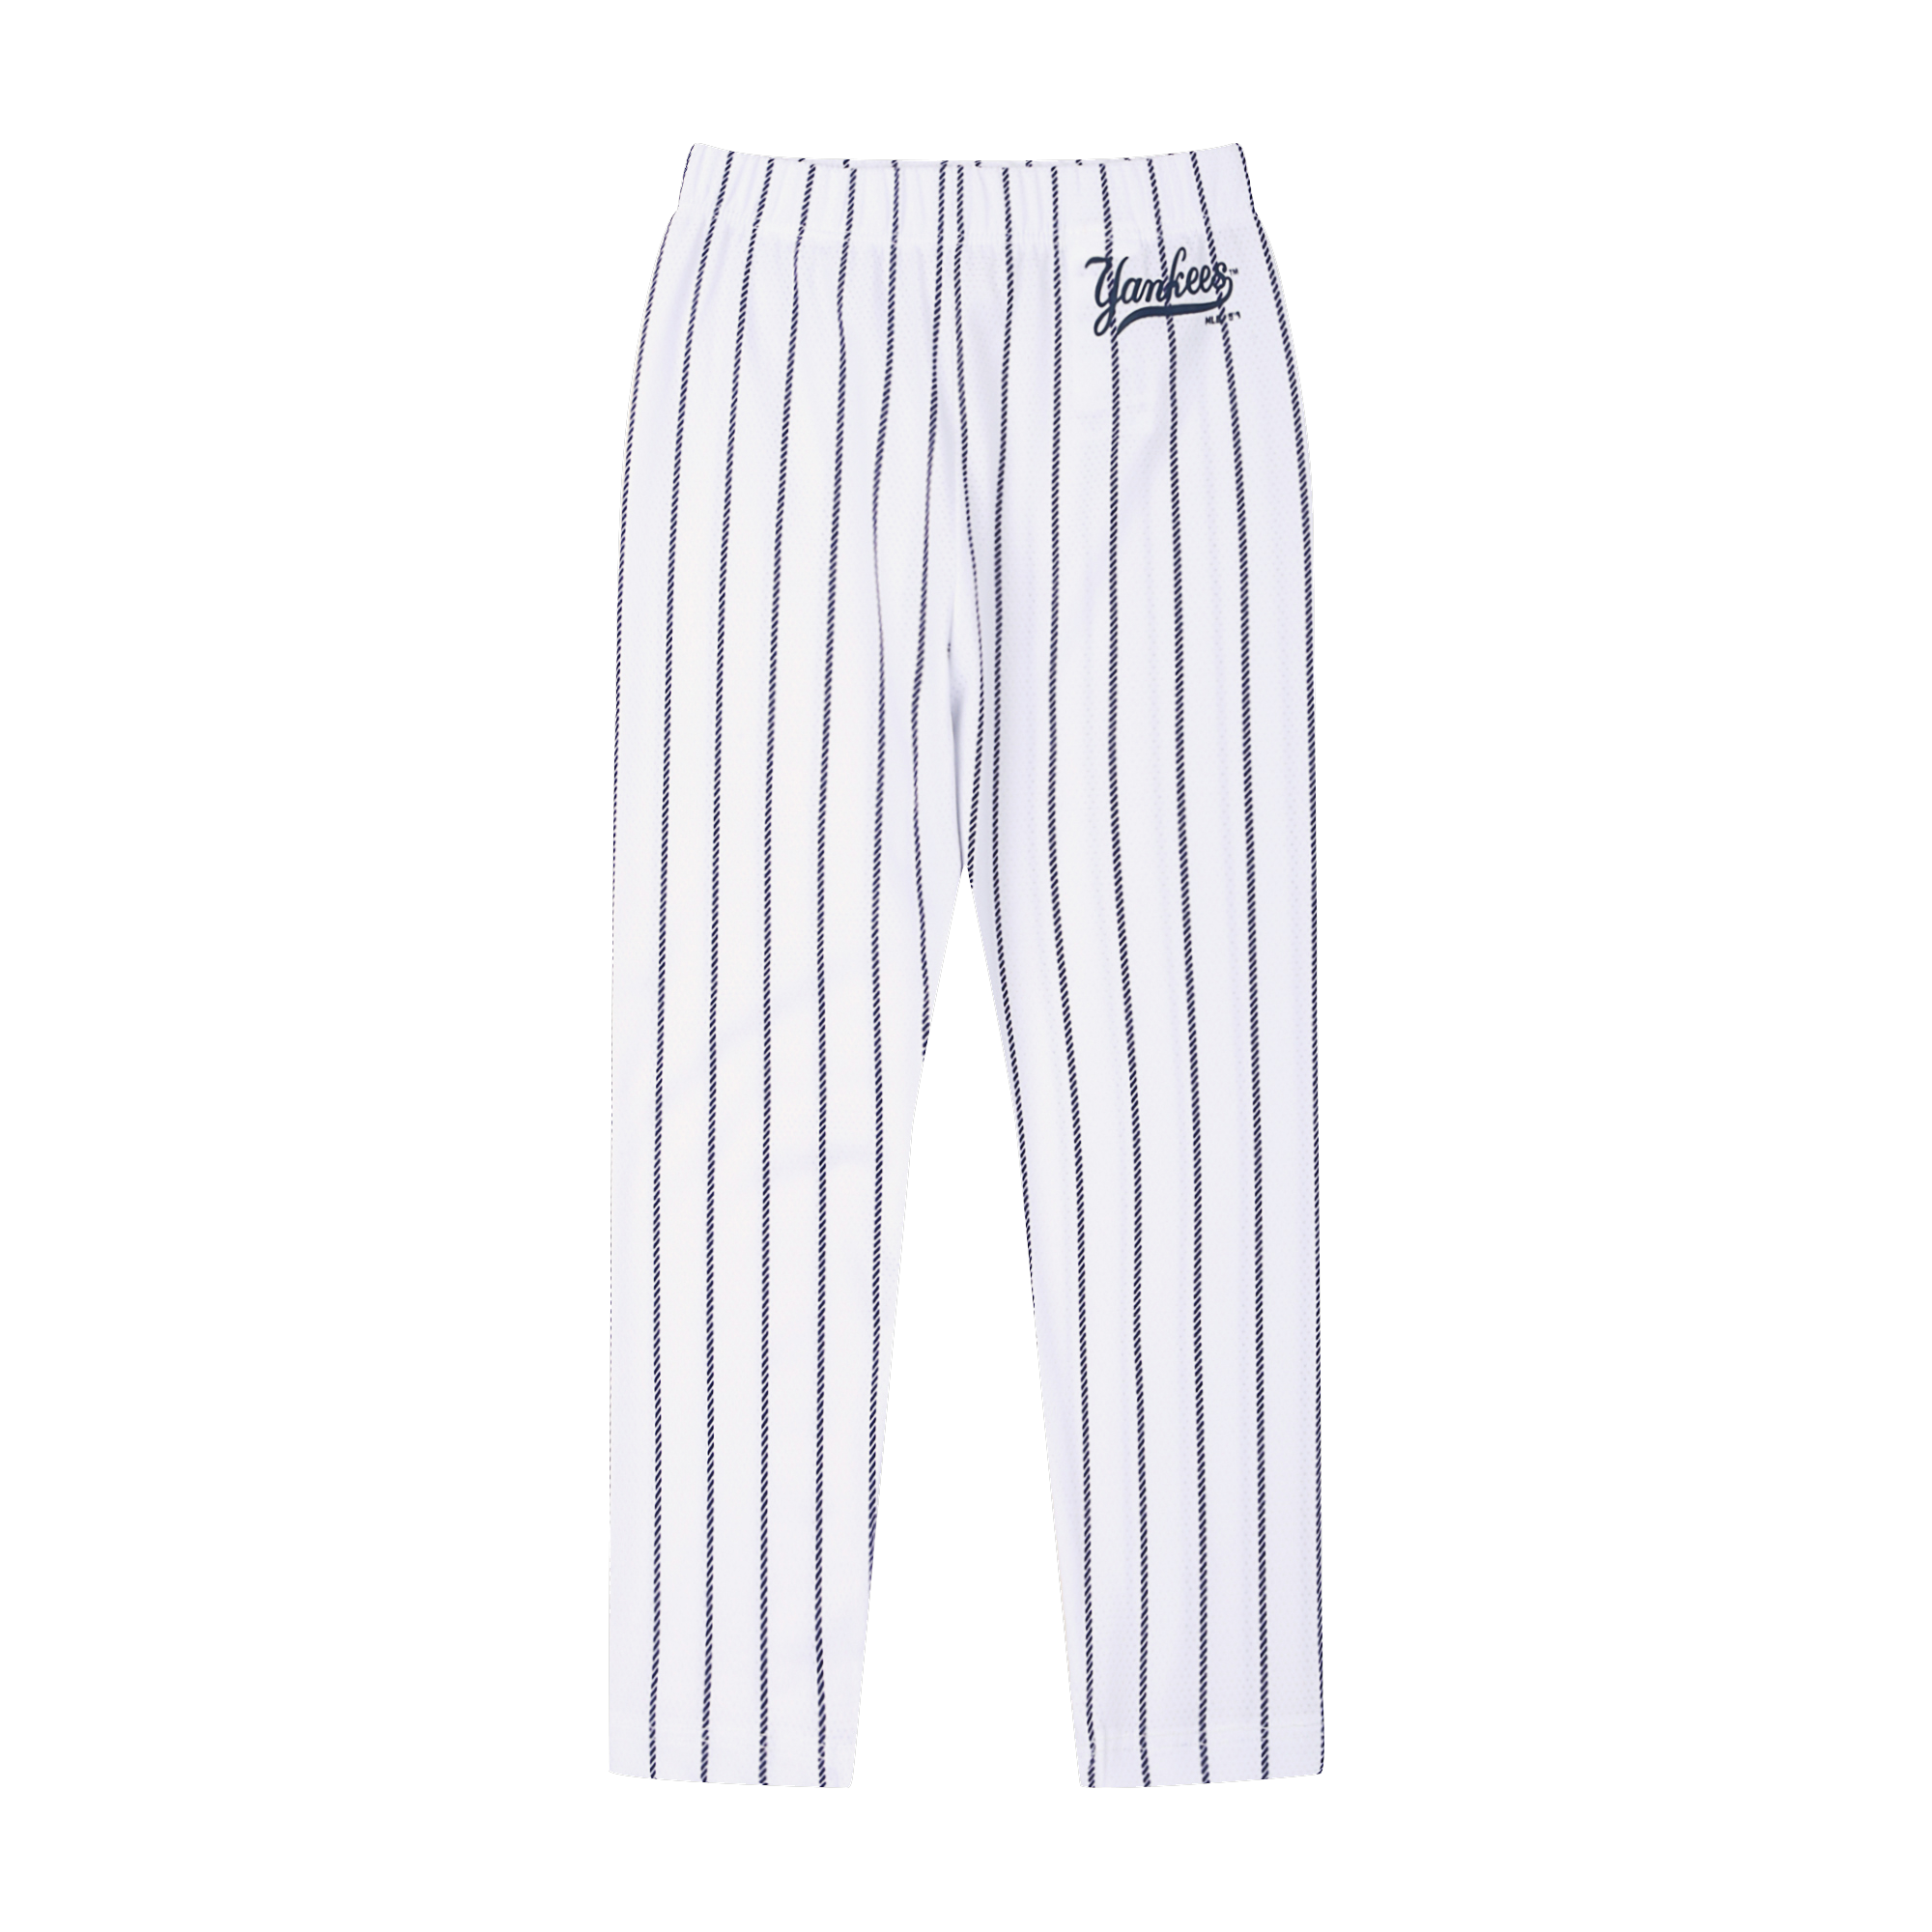 NEW YORK YANKEES STRIPE HALF LEGGINGS